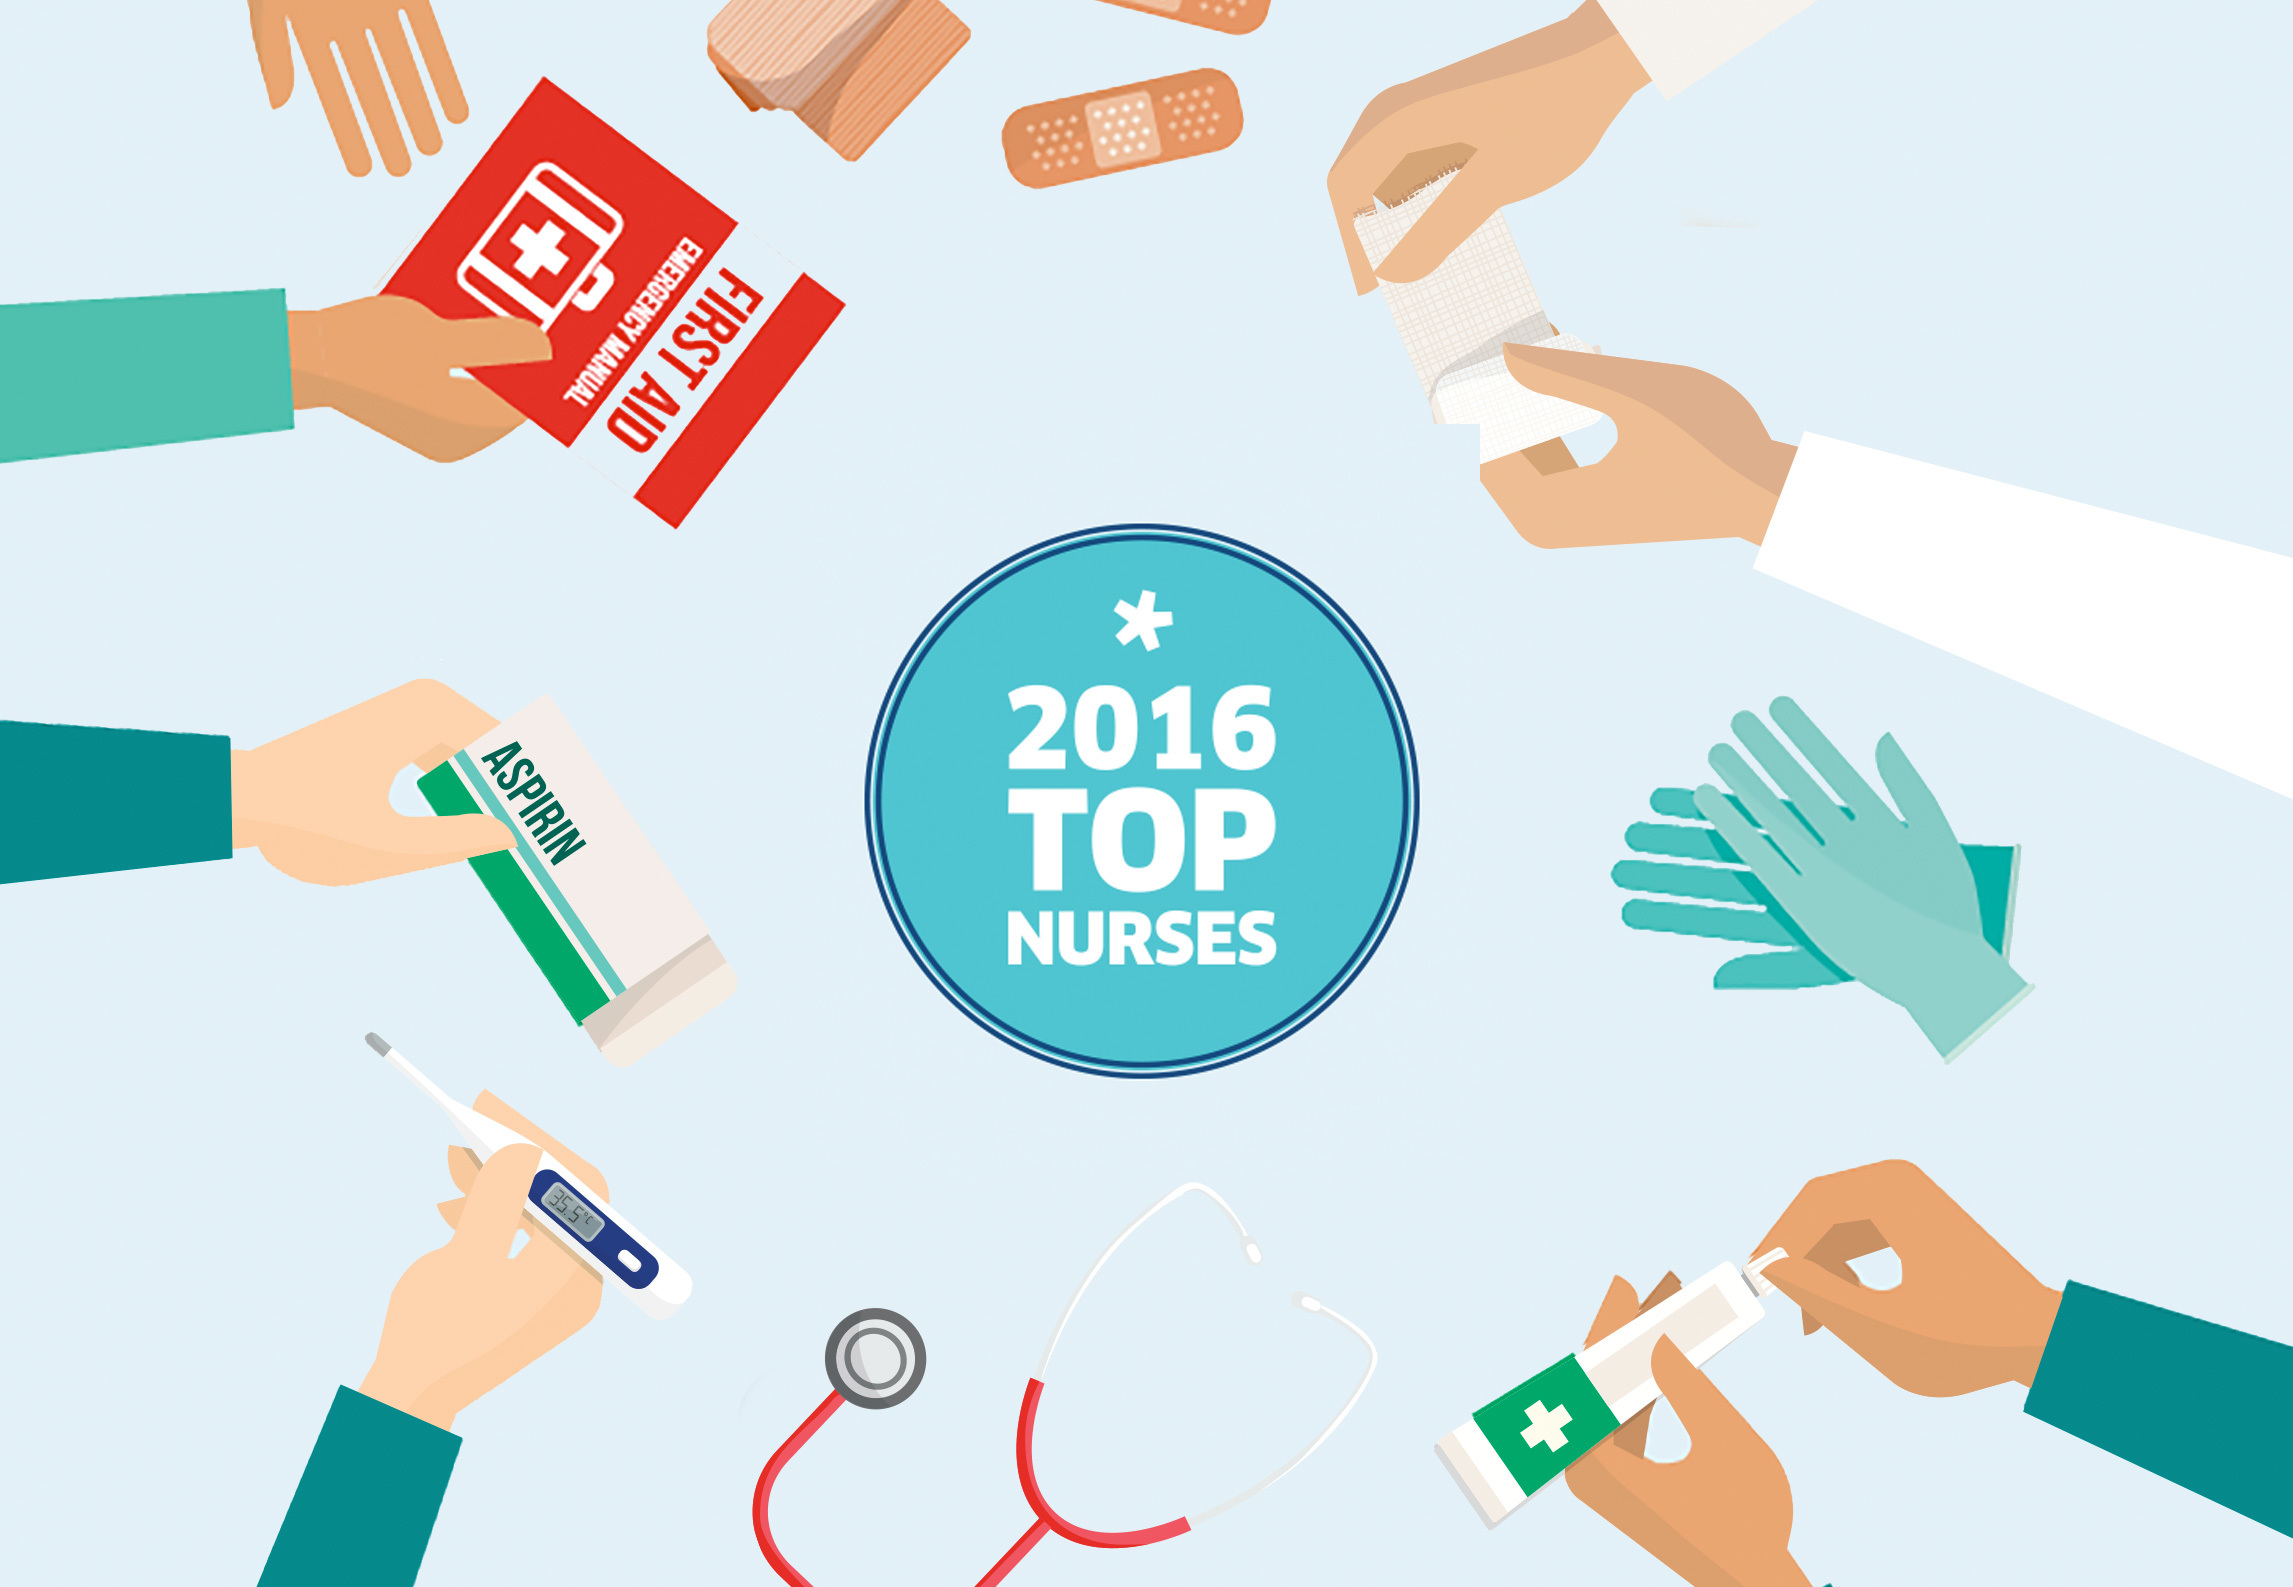 Top Nurses 2016: Unsung Heroes Of Health Care